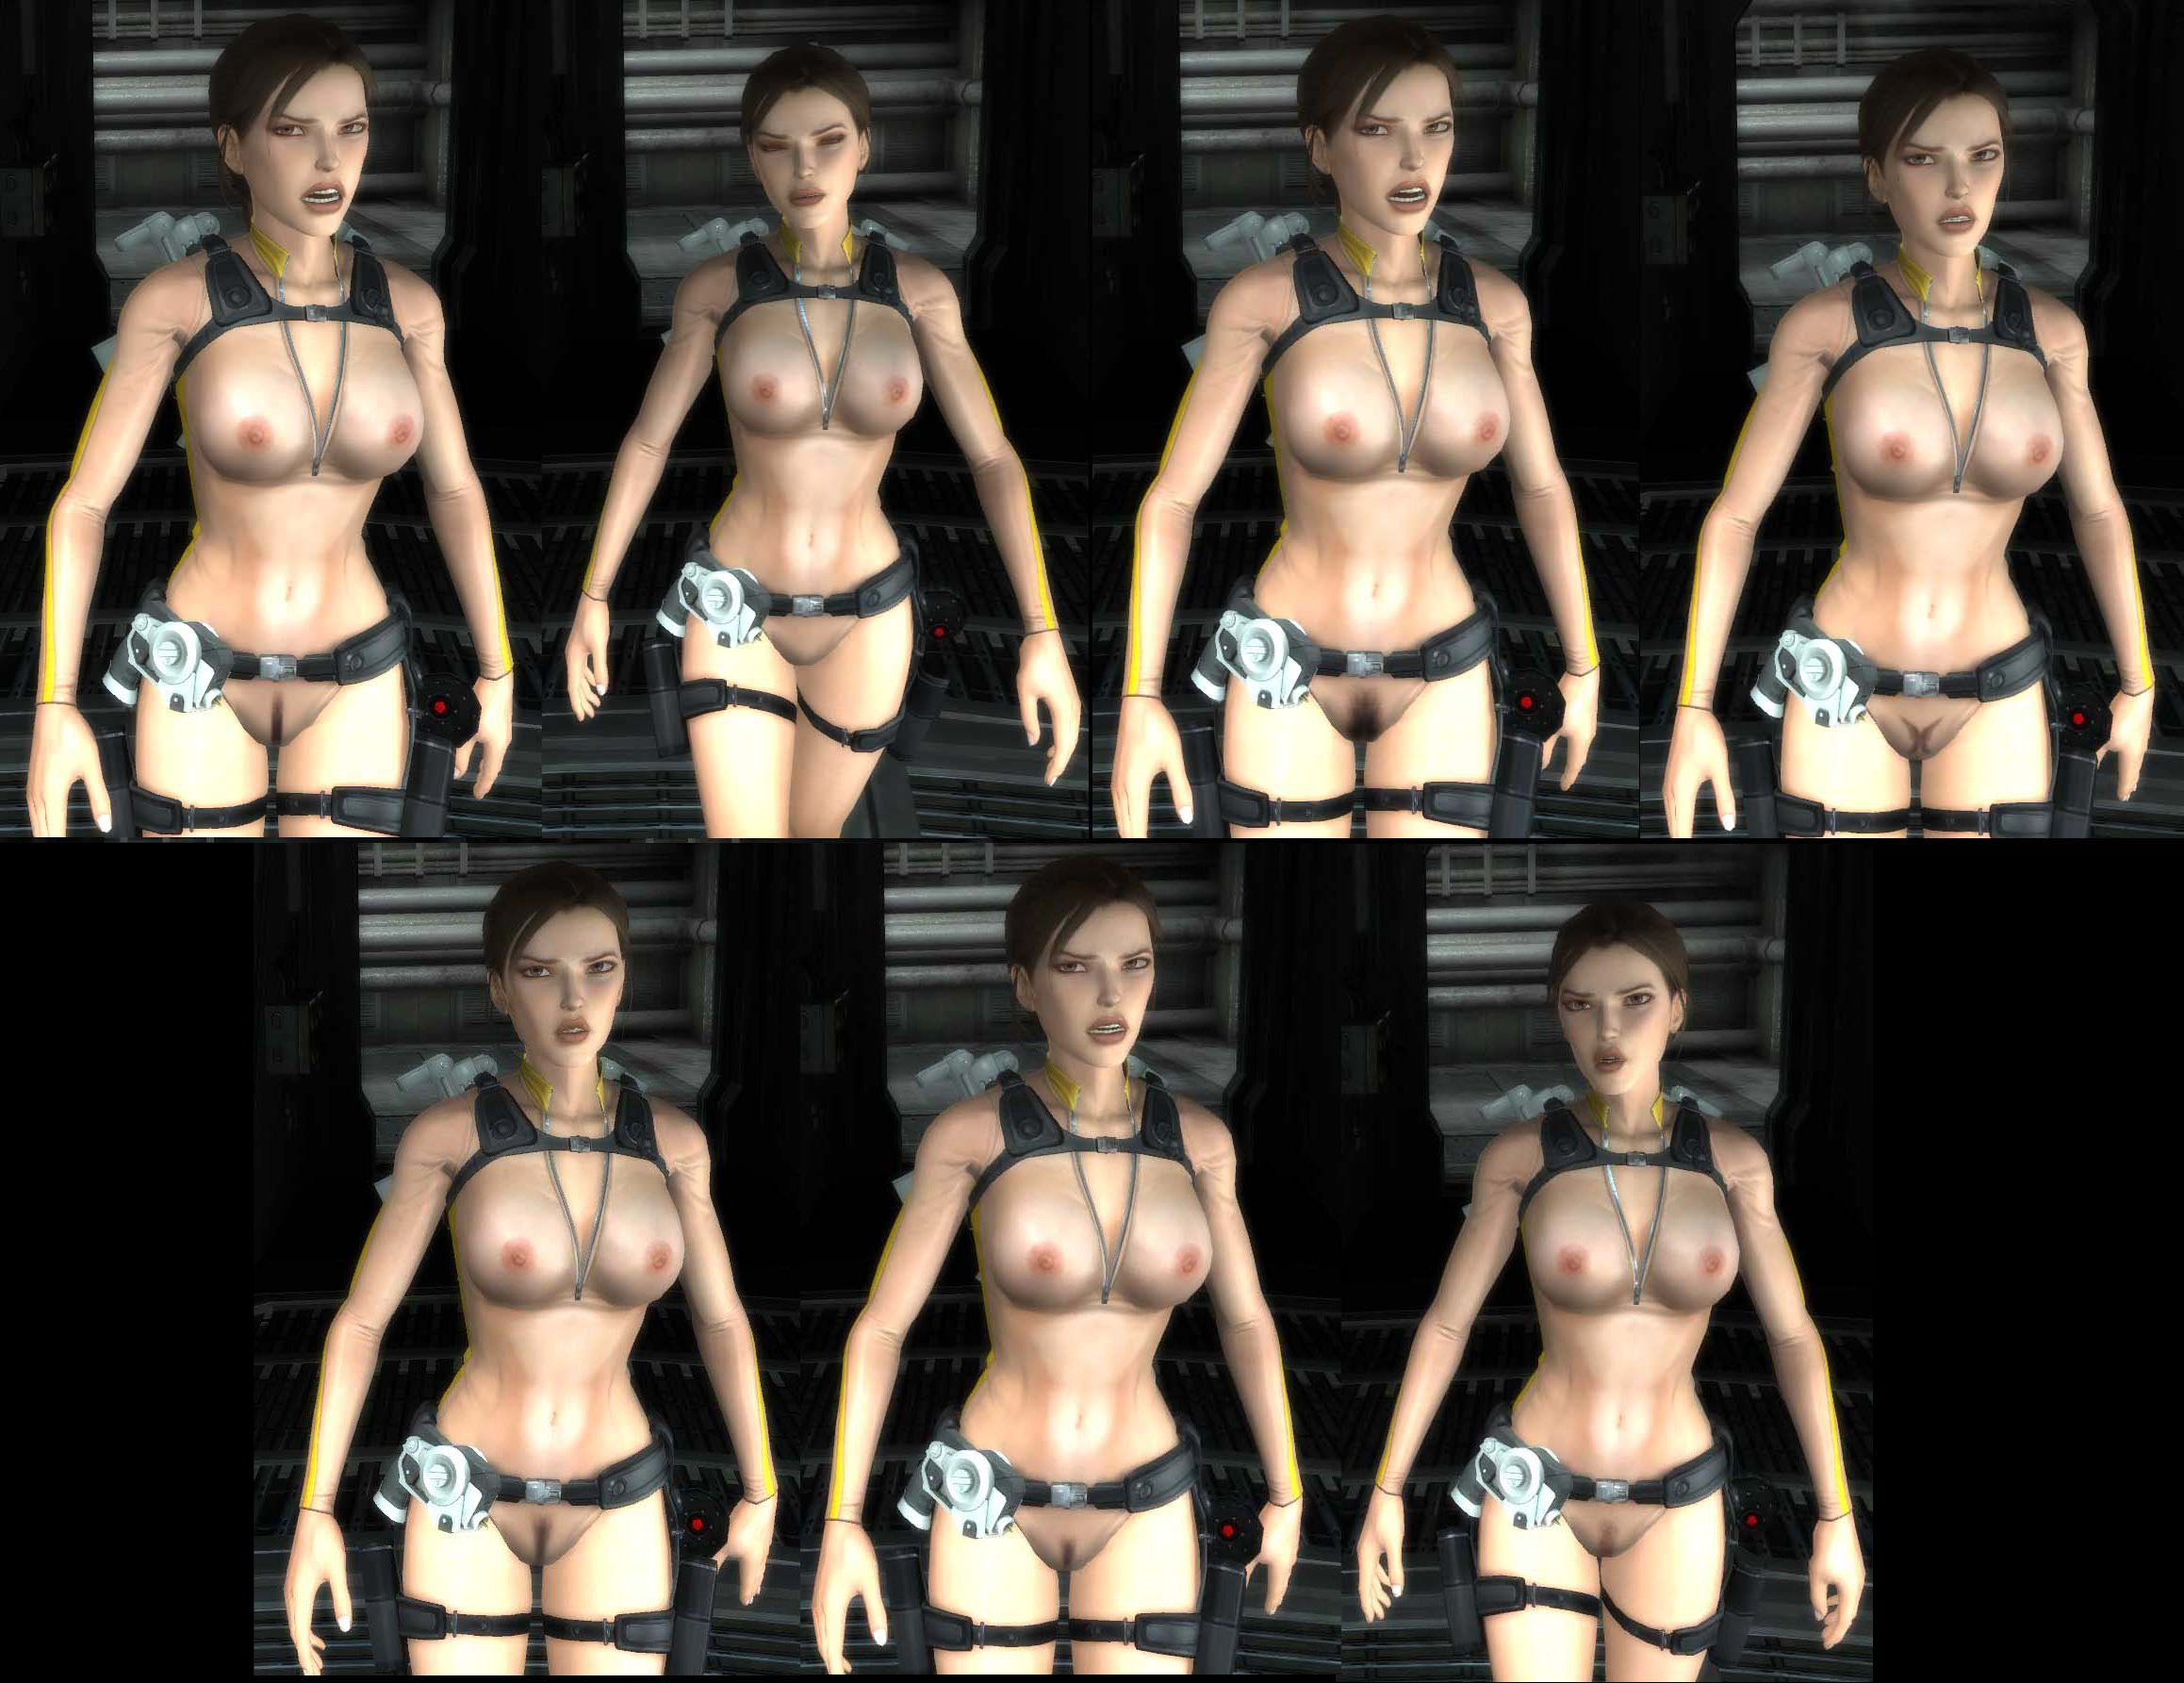 Tomb raider 5 nude patch xxx pic